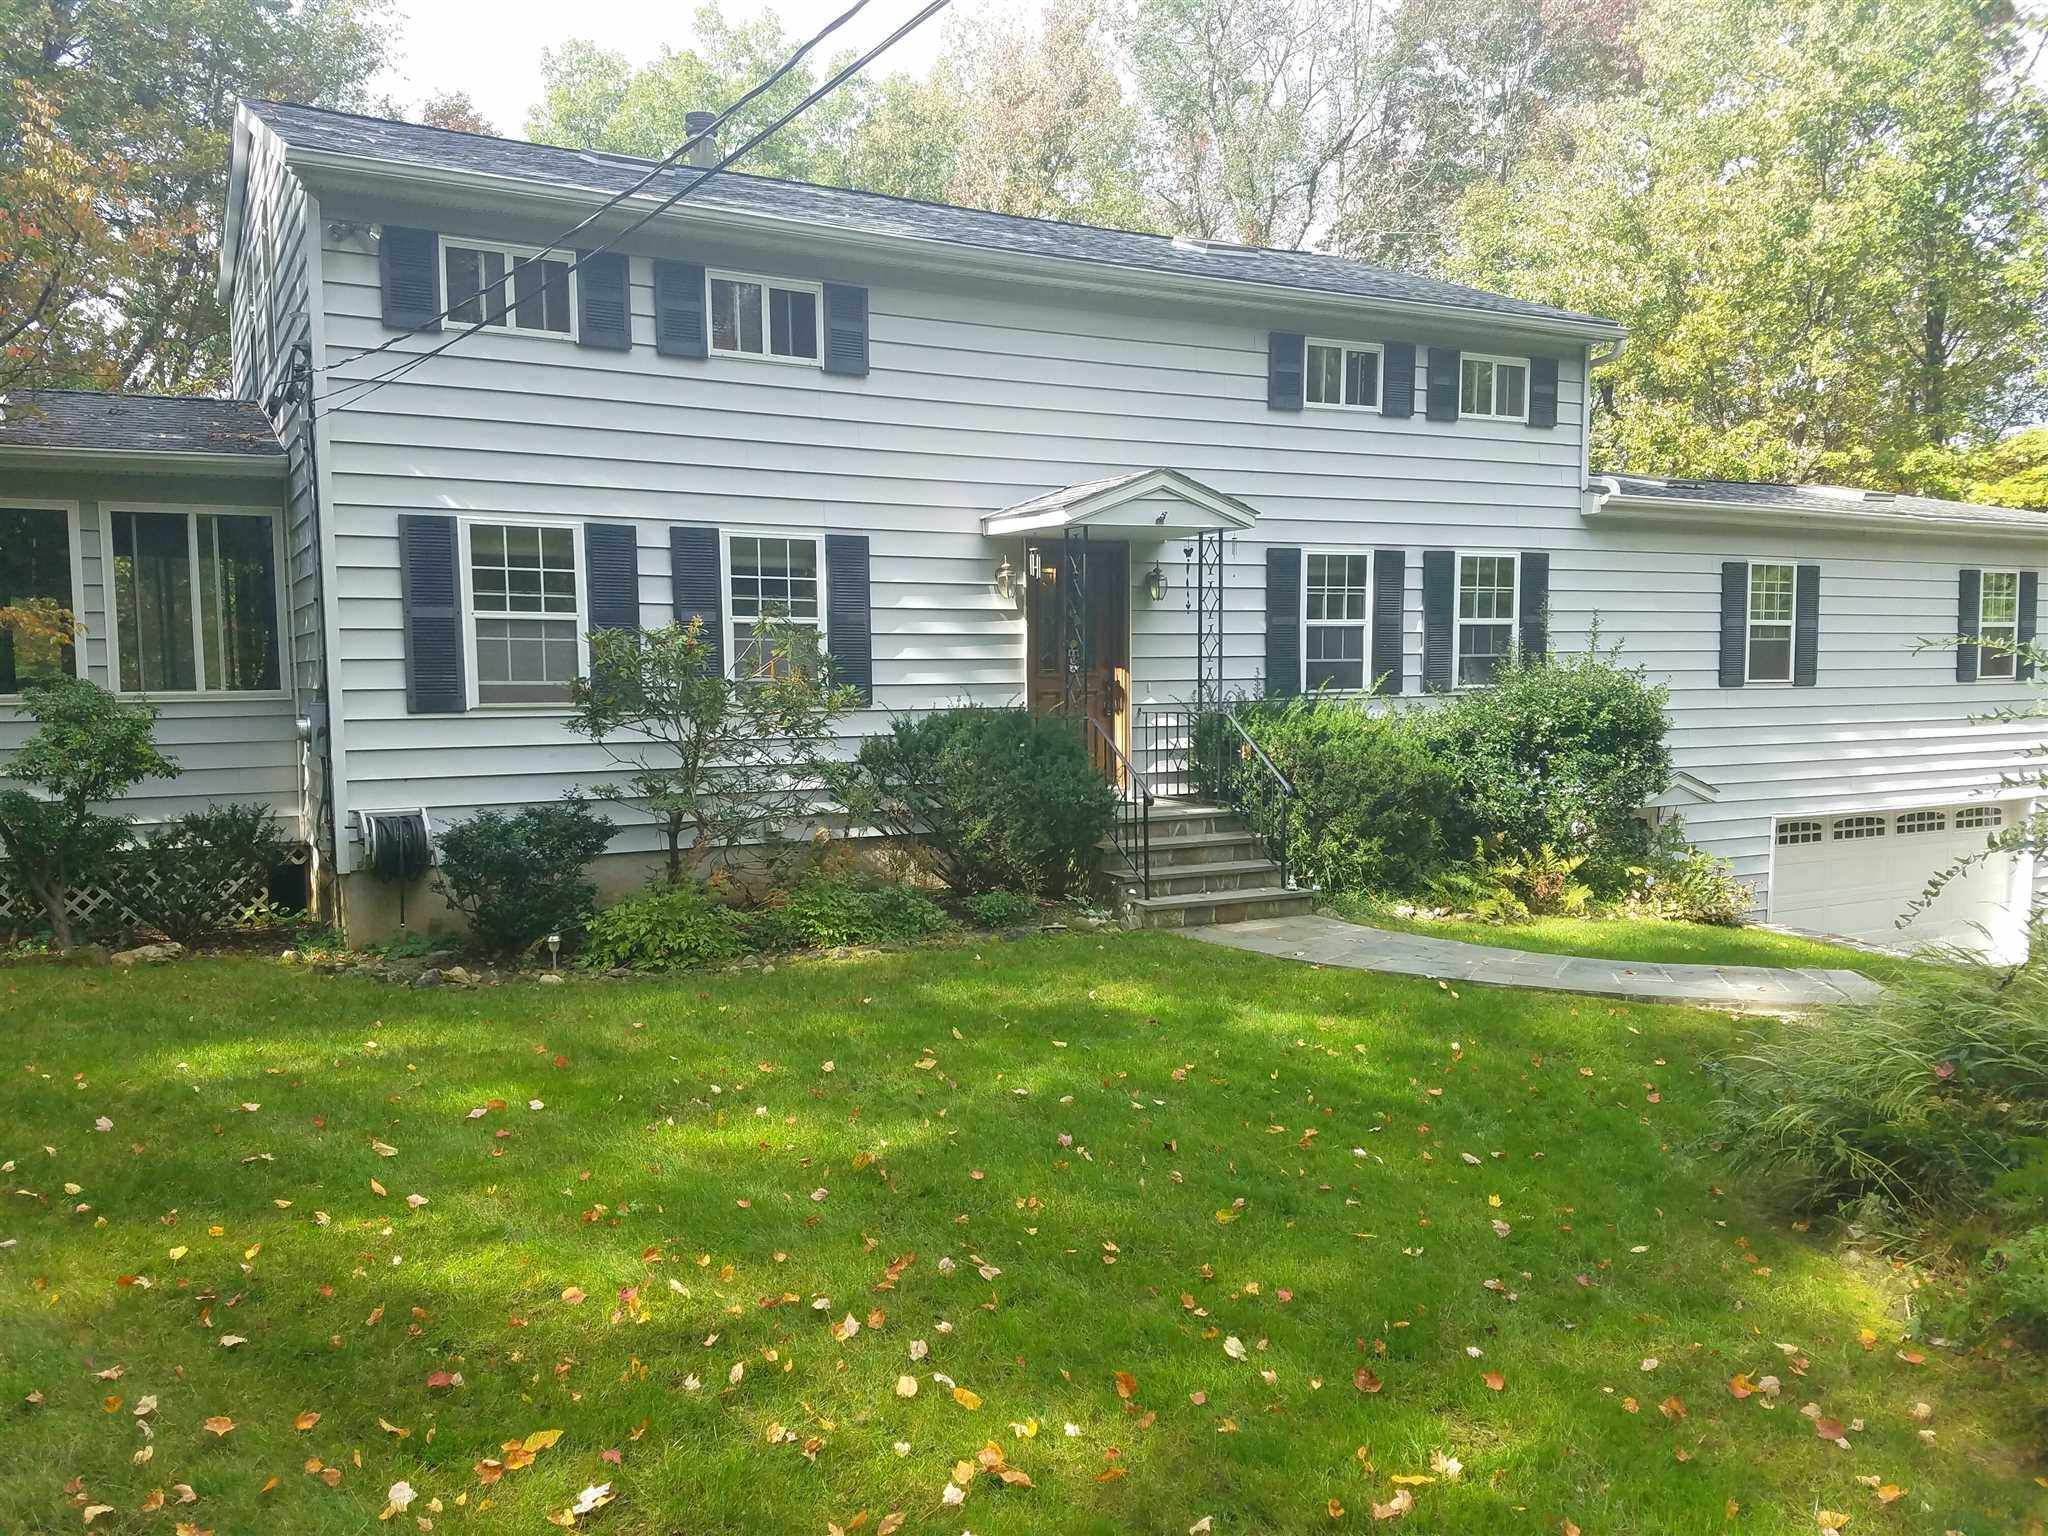 Single Family Home for Sale at 620 EDER Road 620 EDER Road East Fishkill, New York 12582 United States